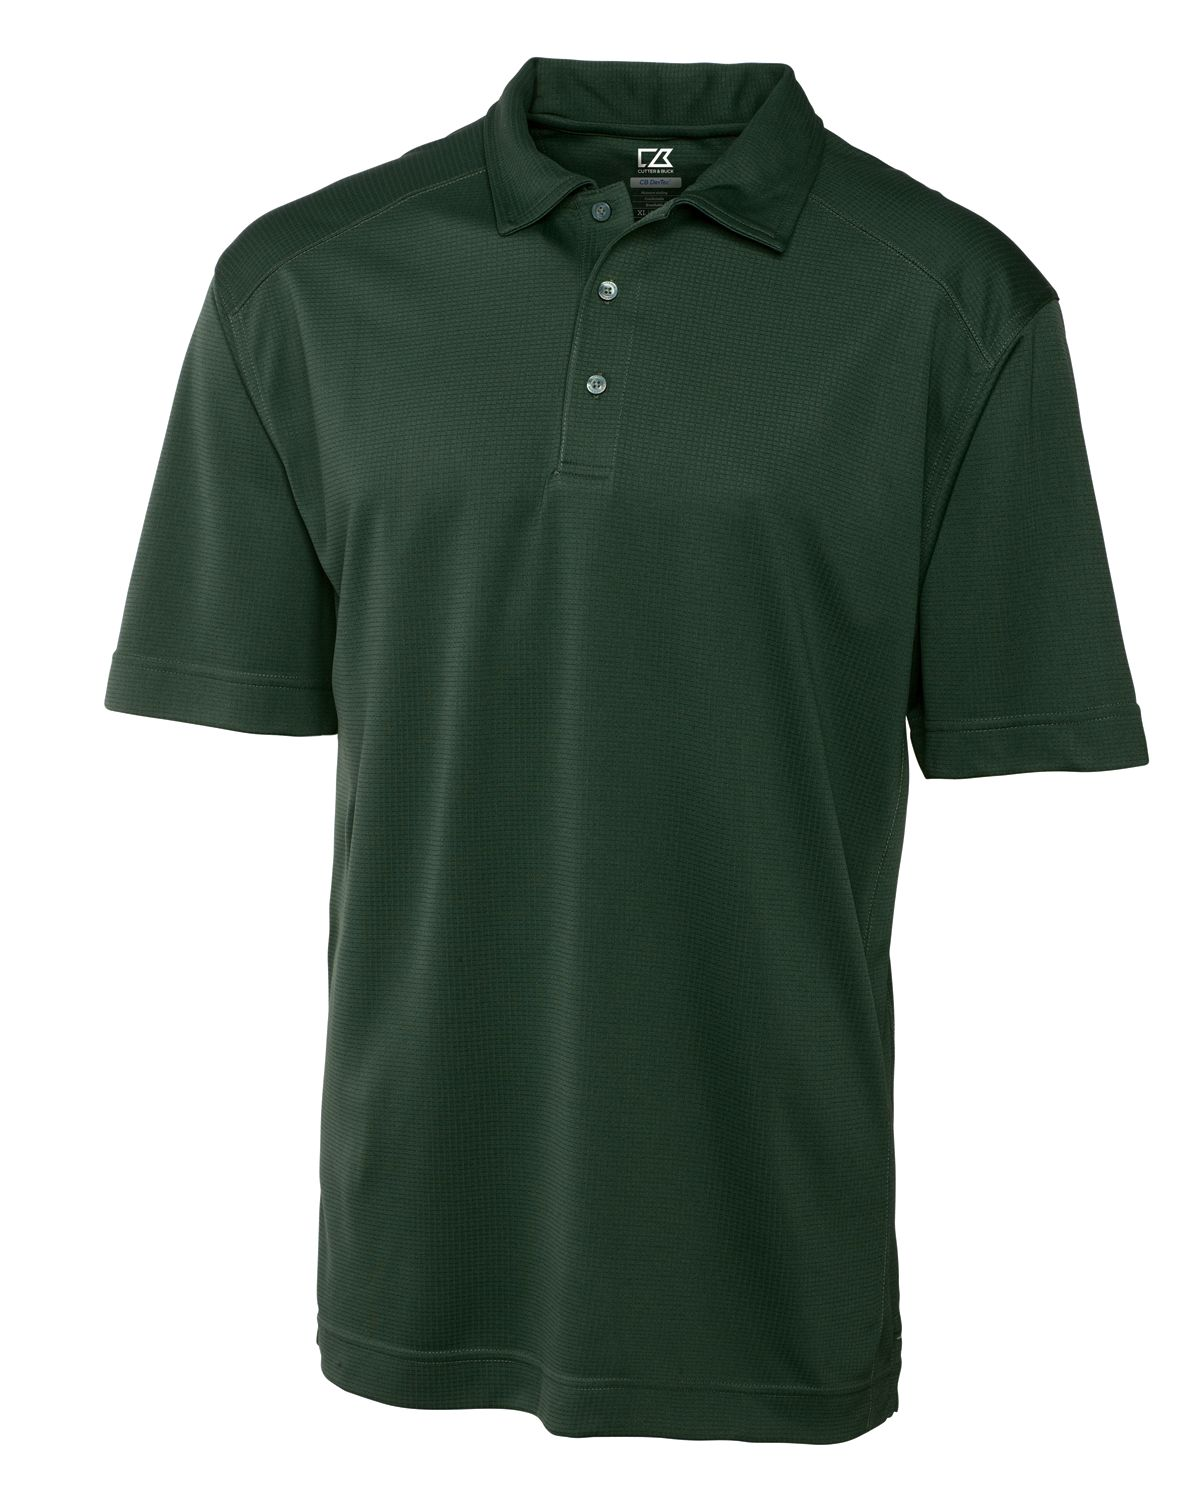 Cutter buck men 39 s drytec genre polo mck00291 for Cutter buck polo shirt size chart